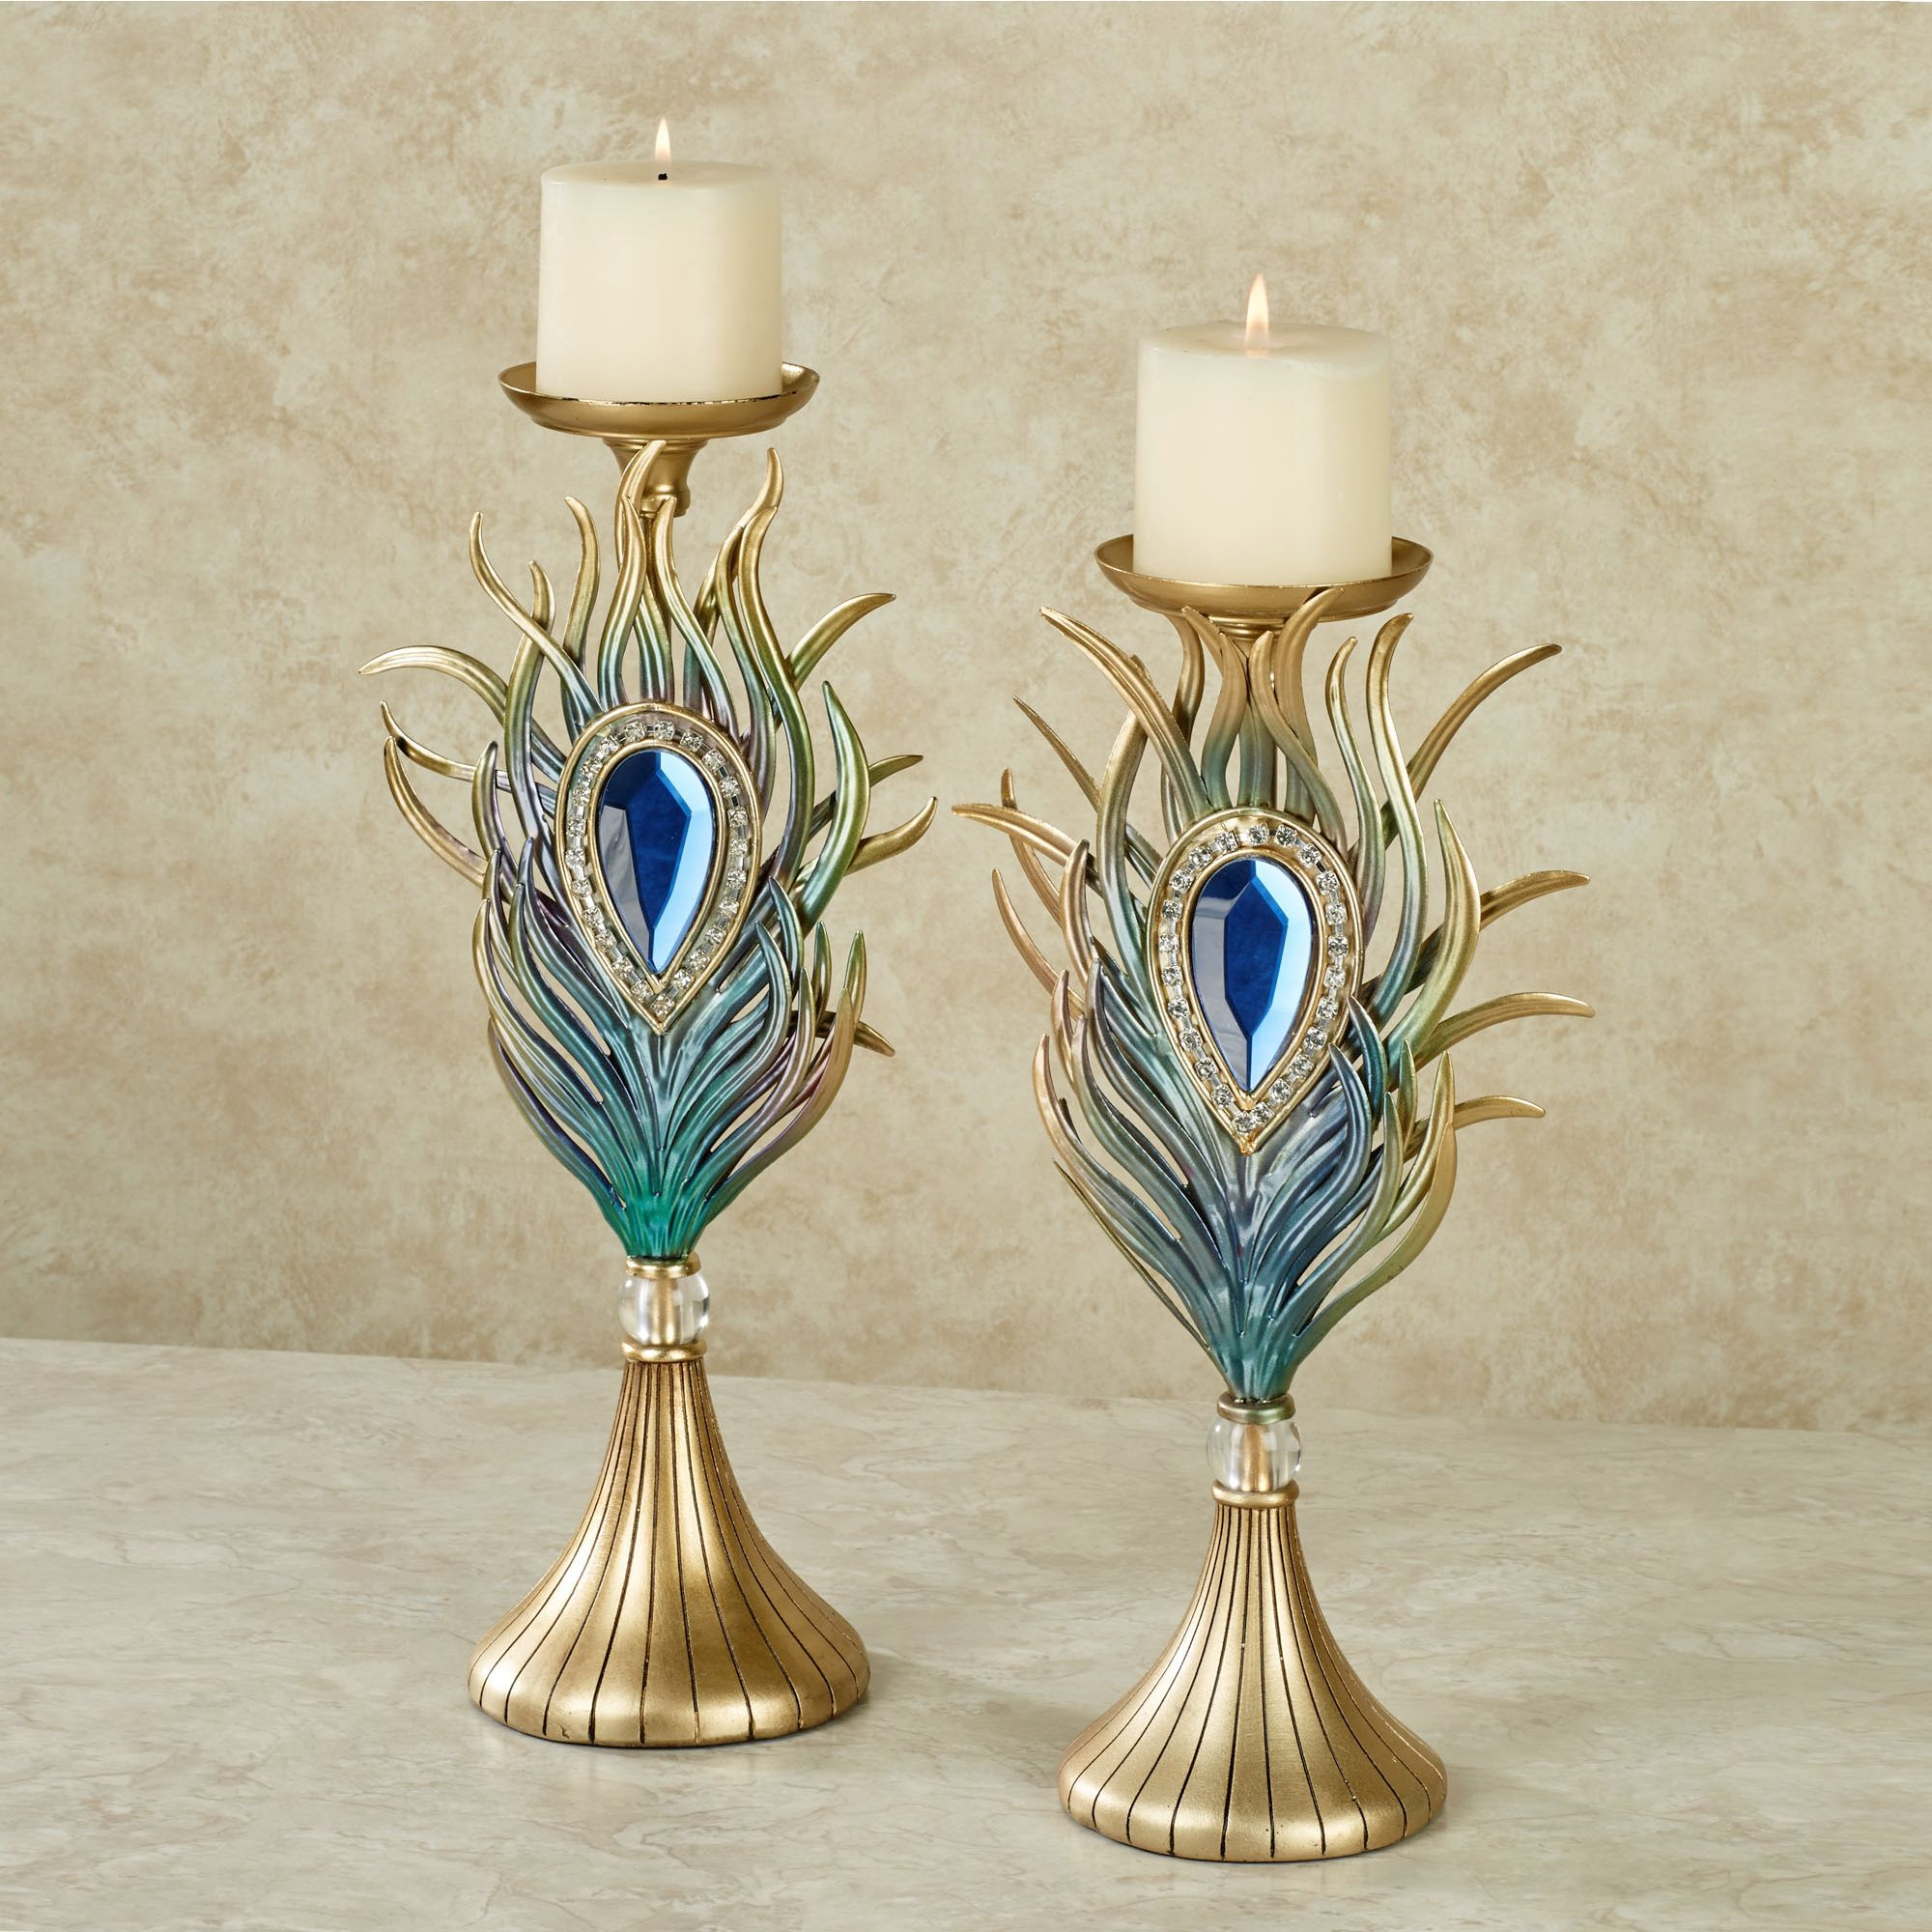 jewel peacock plume candle holders all things peacock jewel peacock plume candle holders